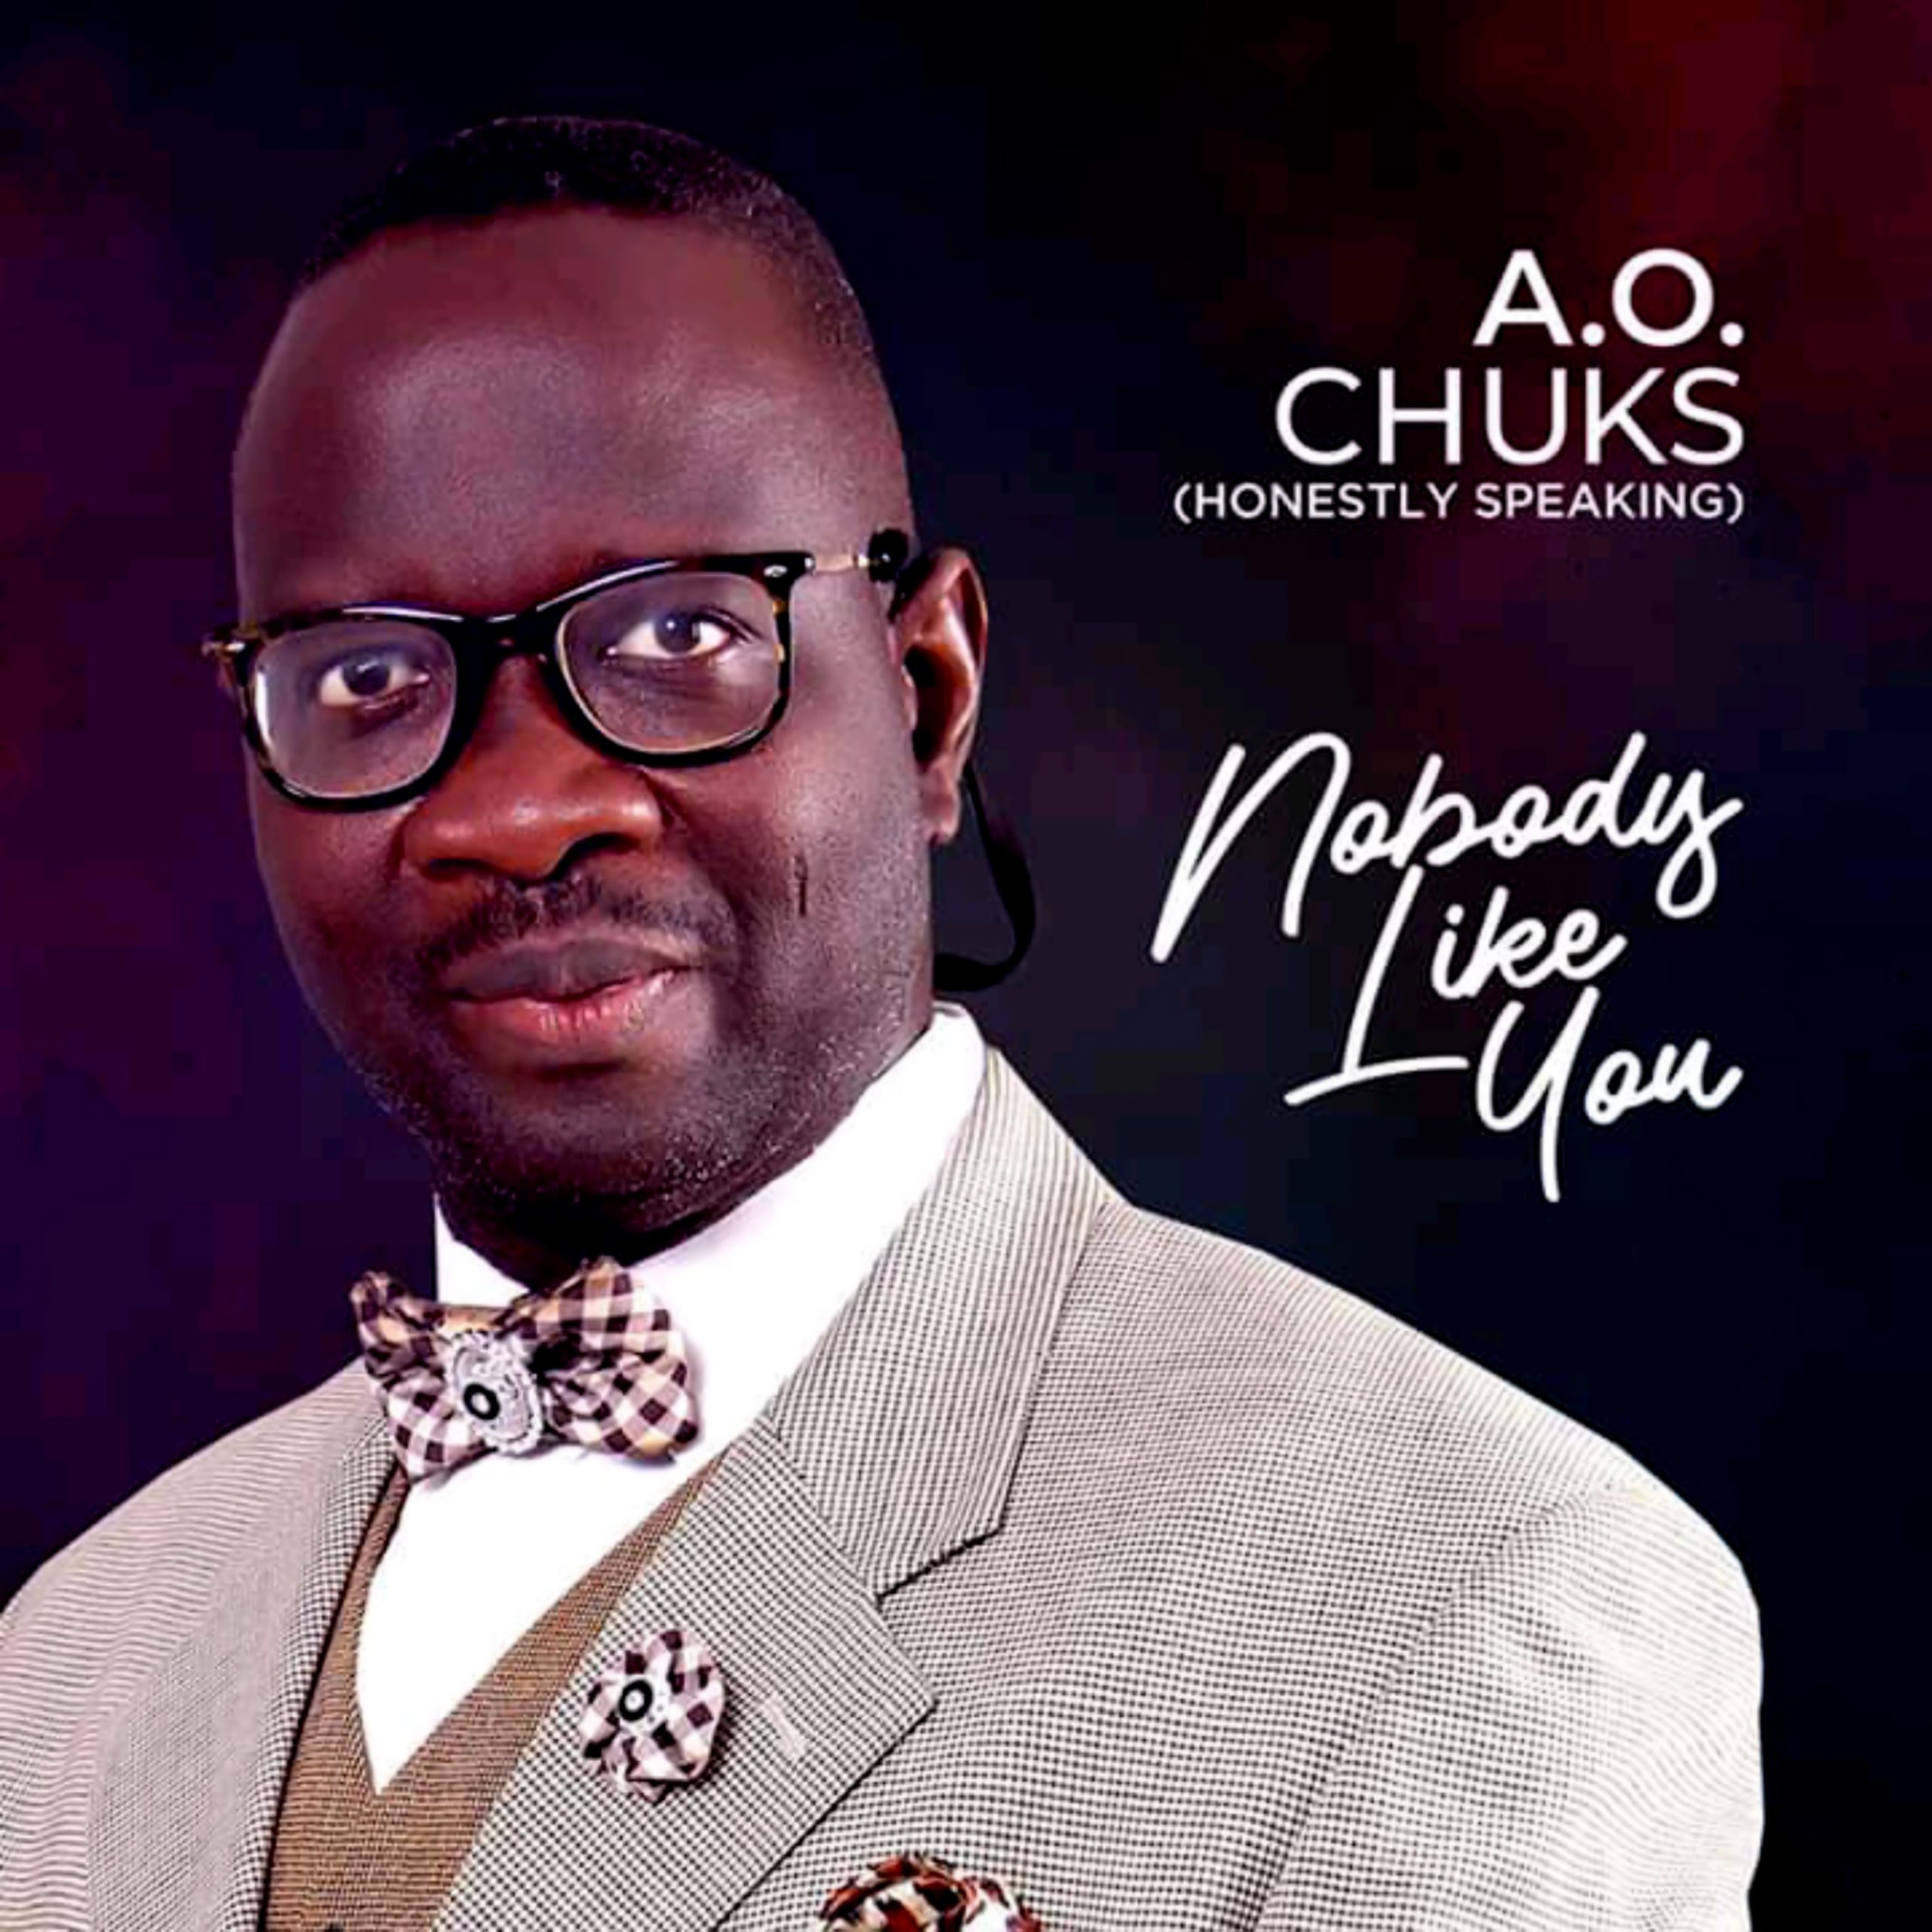 Download music: Nobody like you by A.O CHUKS